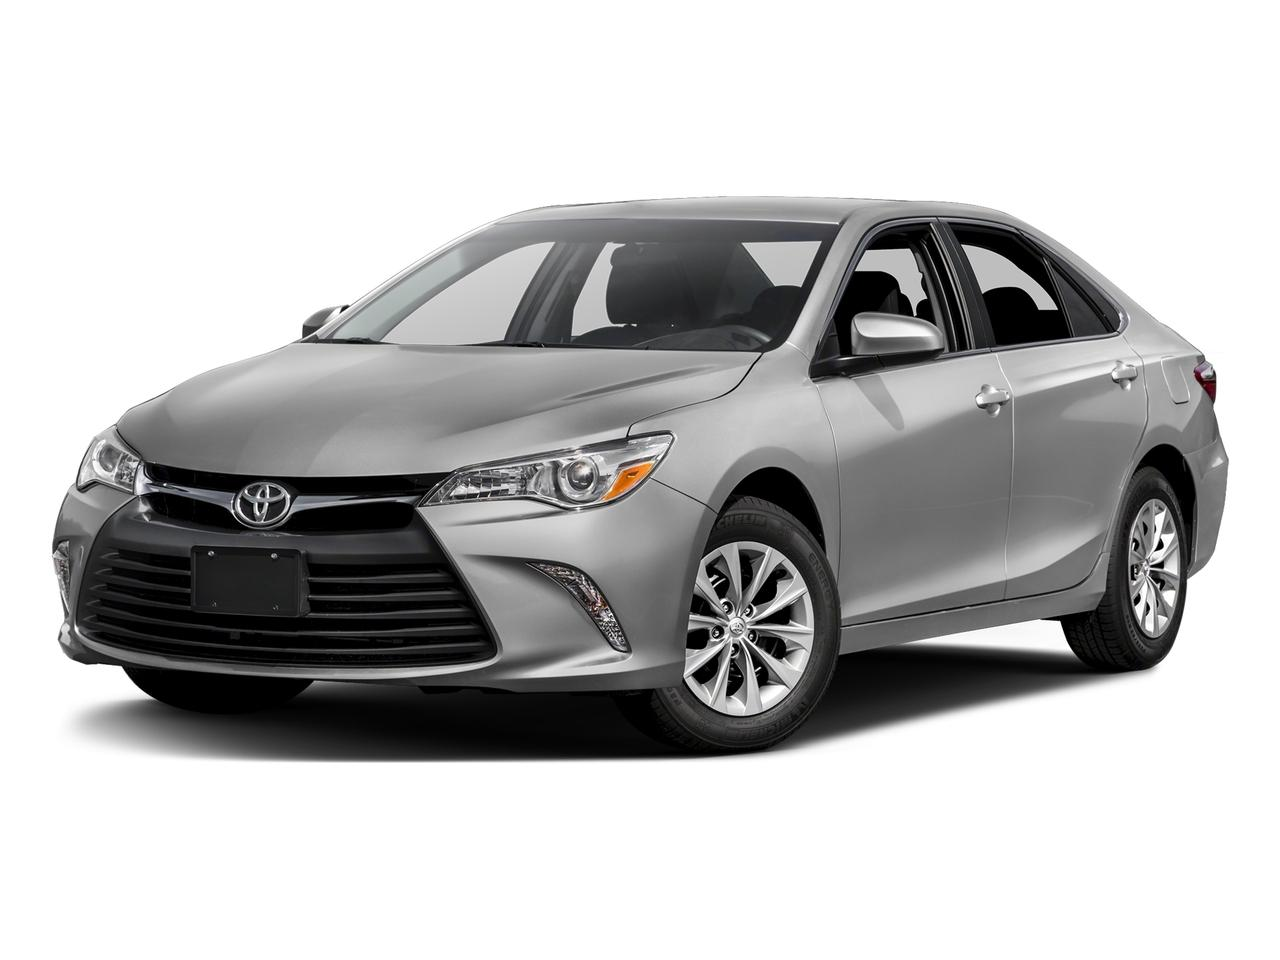 2016 Toyota Camry Vehicle Photo in Rockville, MD 20852